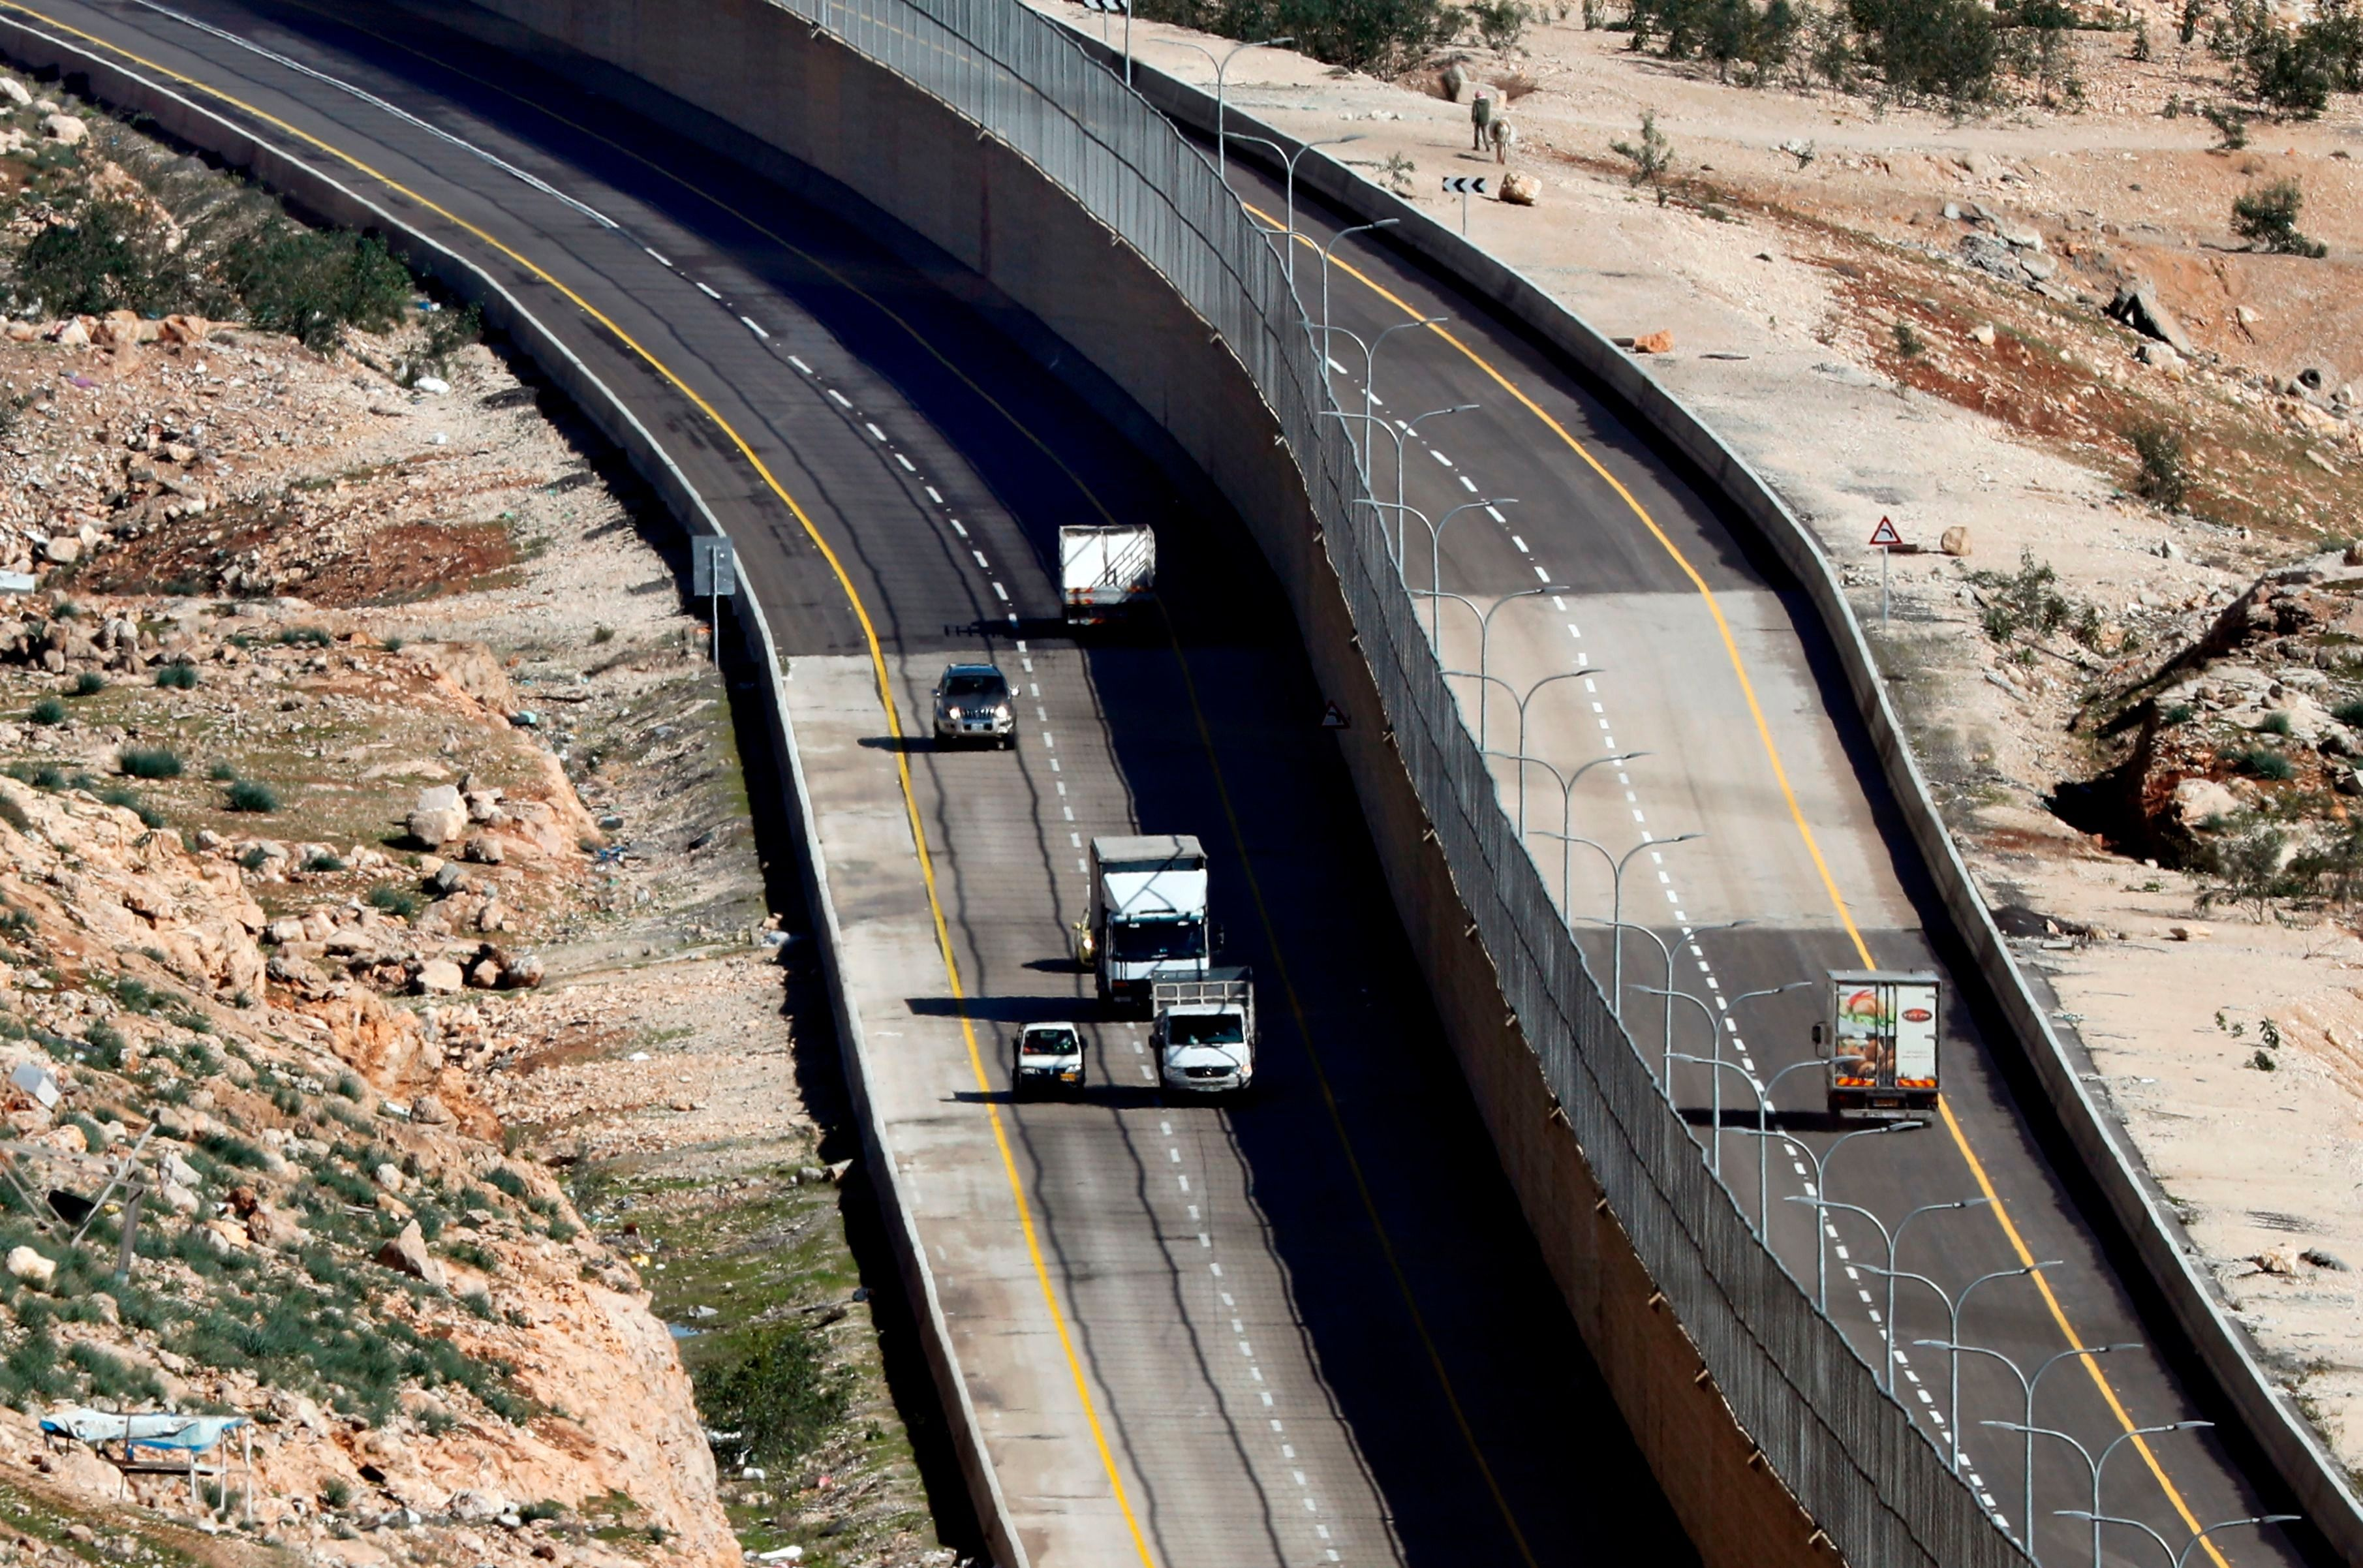 I'm A Settler Who Opposes The Security Barrier - And The New 'Apartheid Road'